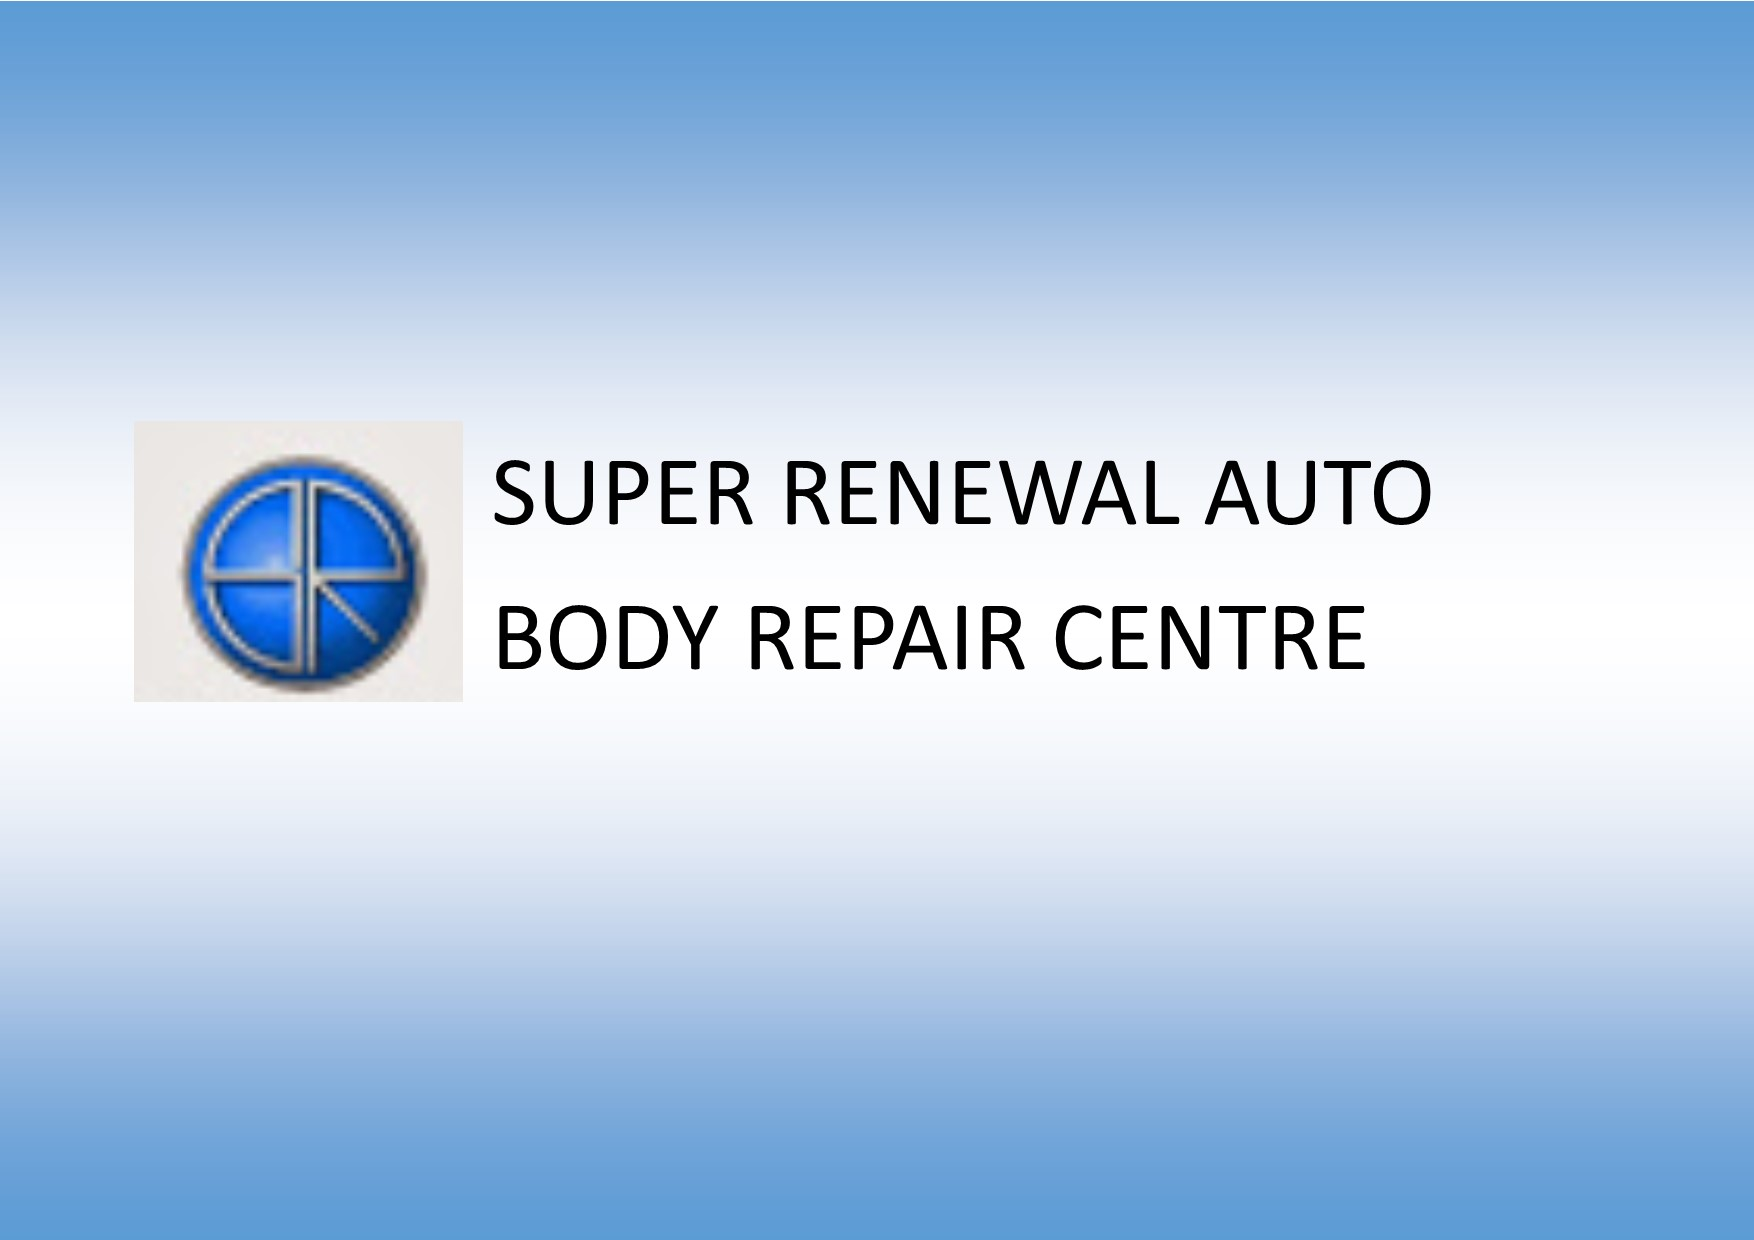 Logo of Super Renewal Auto Body Repair Centre